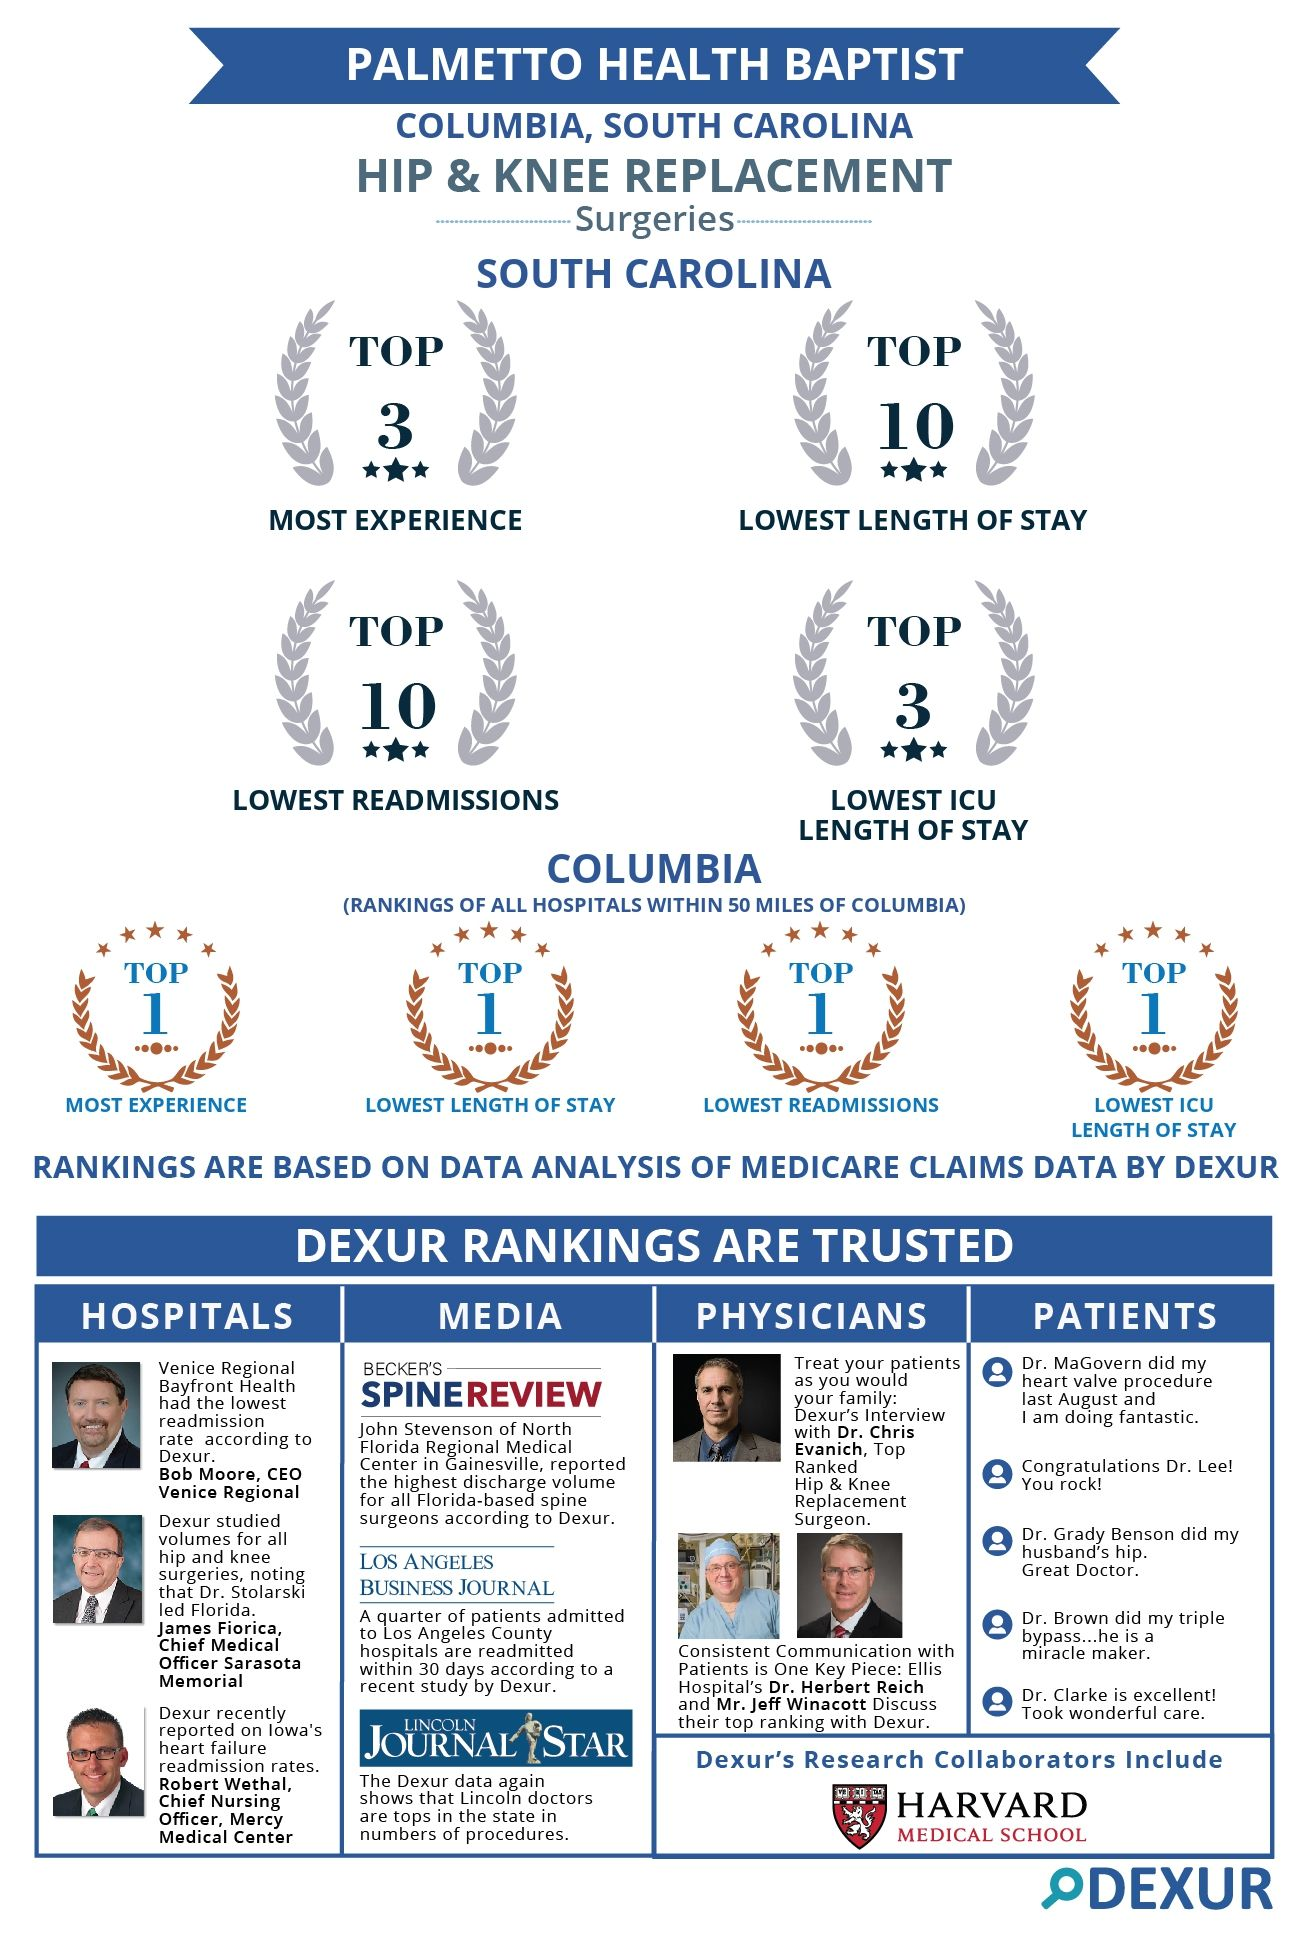 Palmetto Health Baptist Top Ranked Hospital For Hip Knee Replacement Surgeries Within 50 Miles Knee Replacement Surgery Knee Replacement Surgery